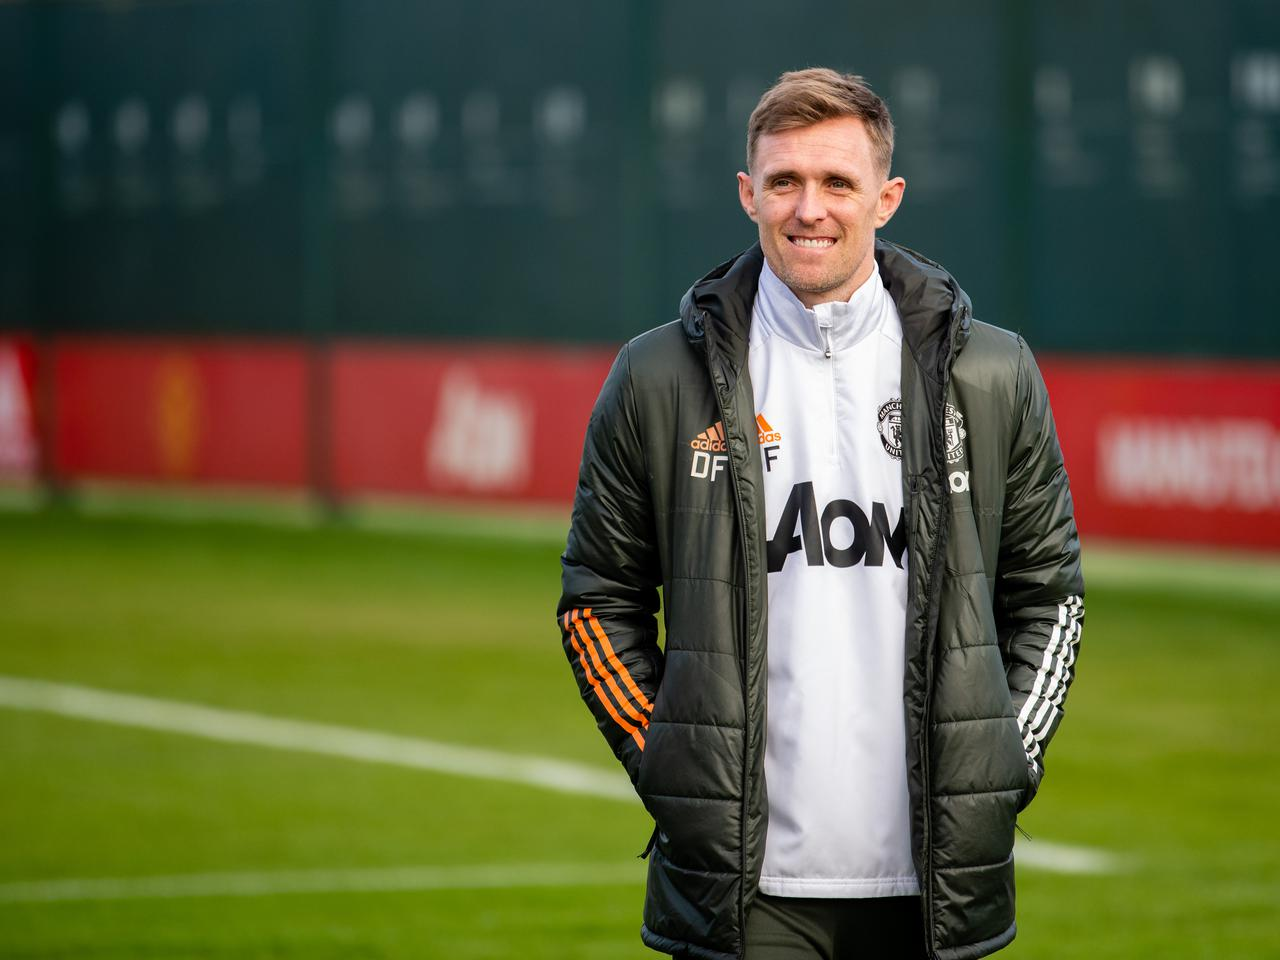 Darren Fletcher delighted to start first team coaching role at Man Utd |  Manchester United